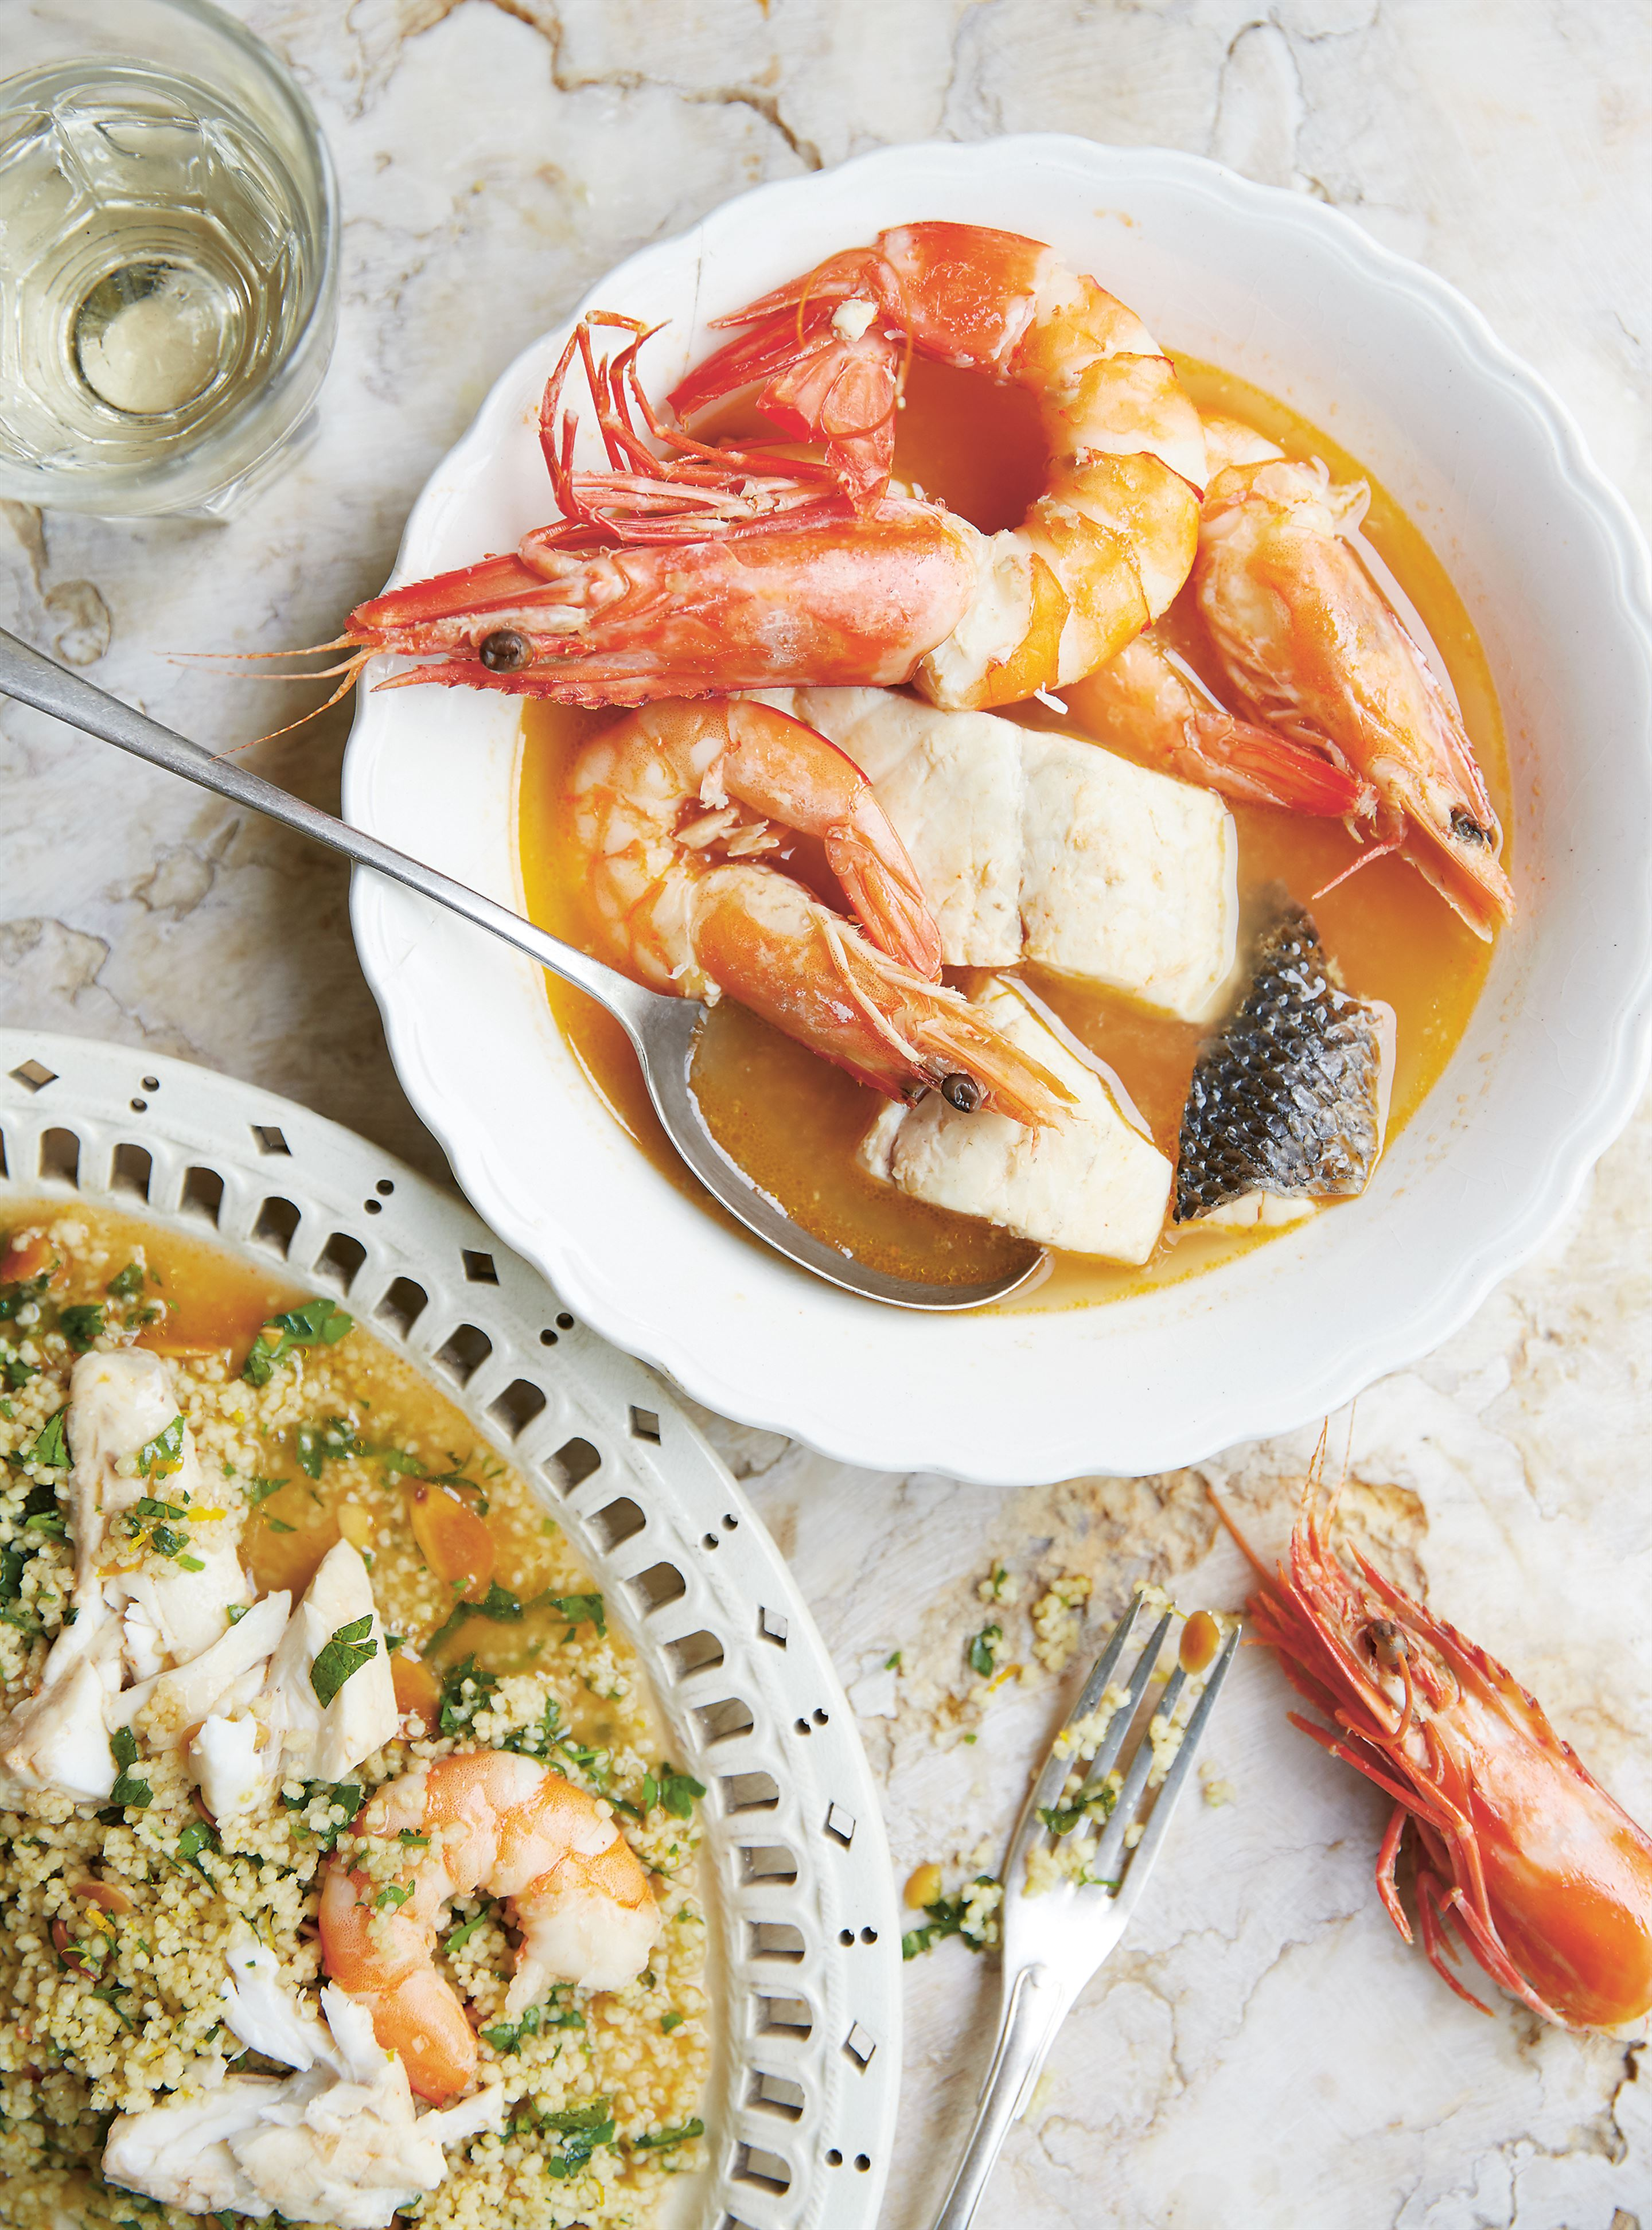 Fish & shellfish couscous